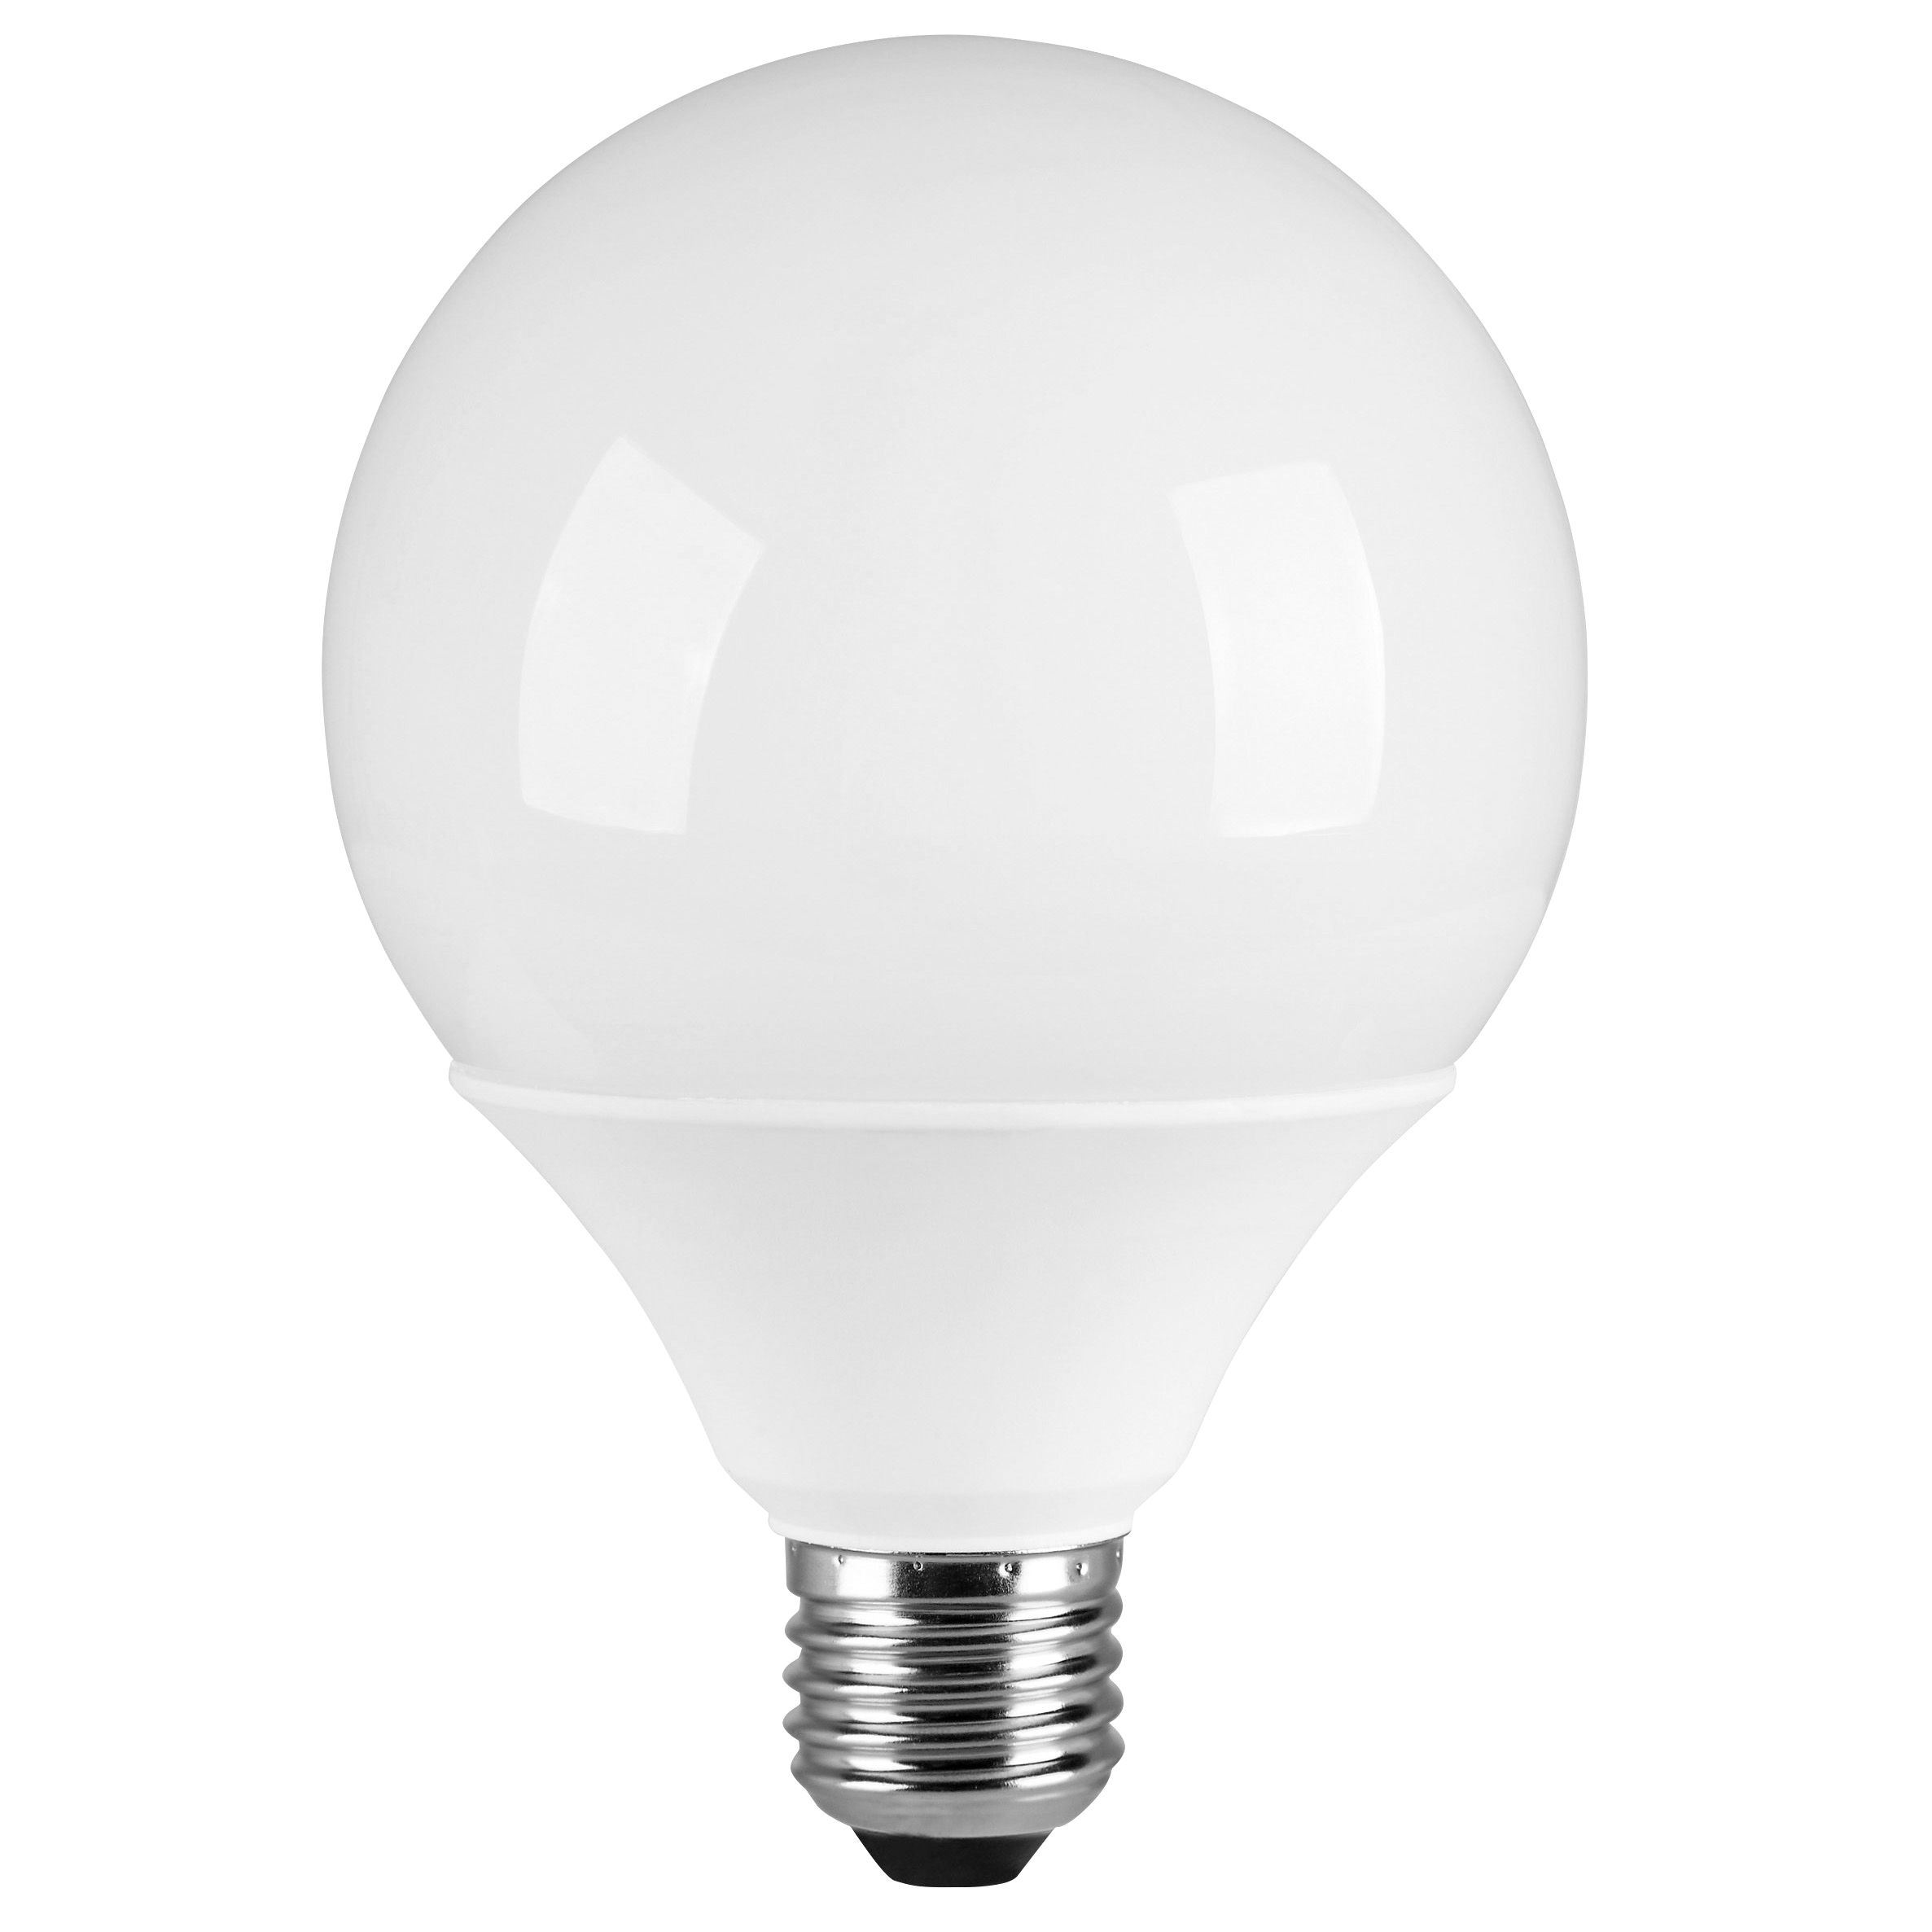 bulbs energy saving choose guides how the right home litecraft lighting buying for to your light cfl